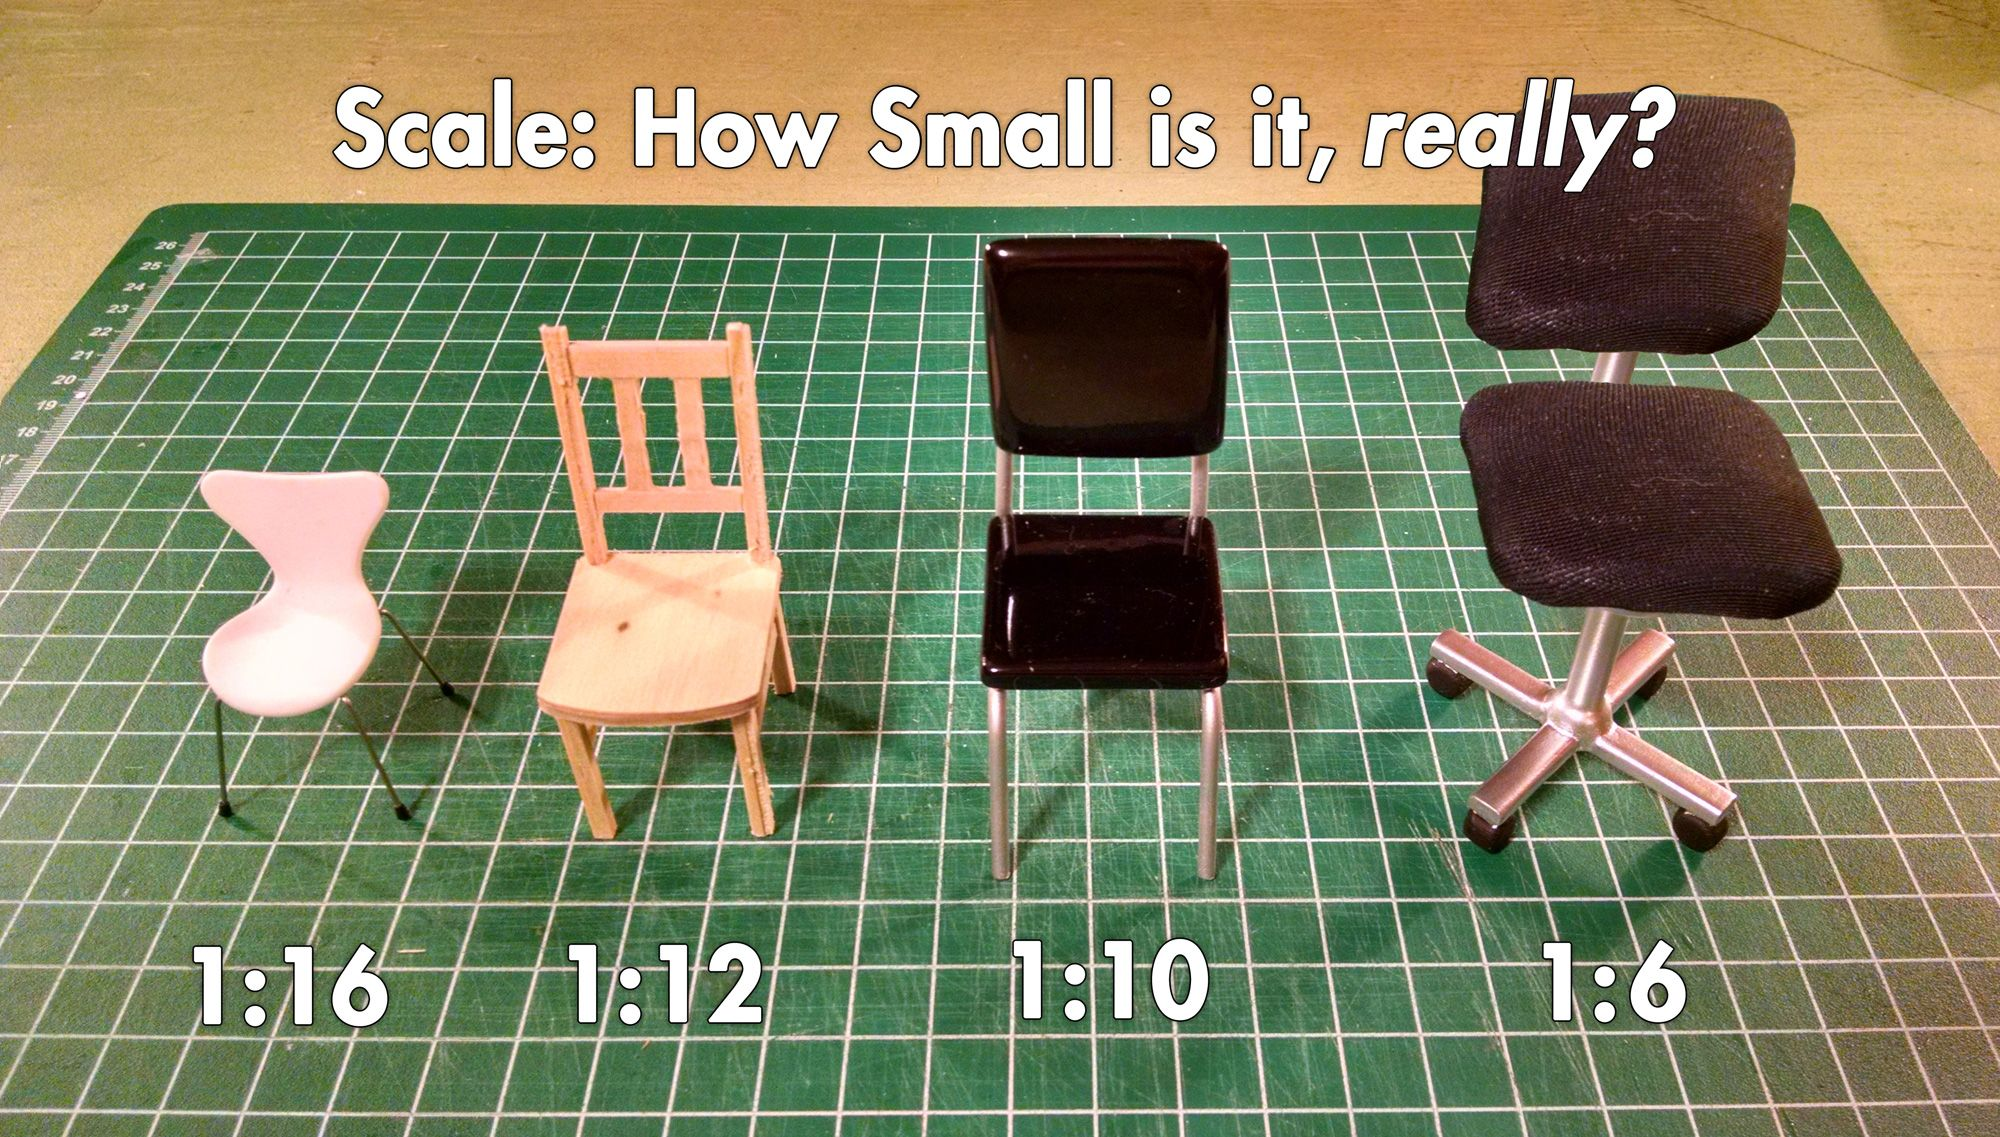 Scale, What does 112 mean, and why is it important